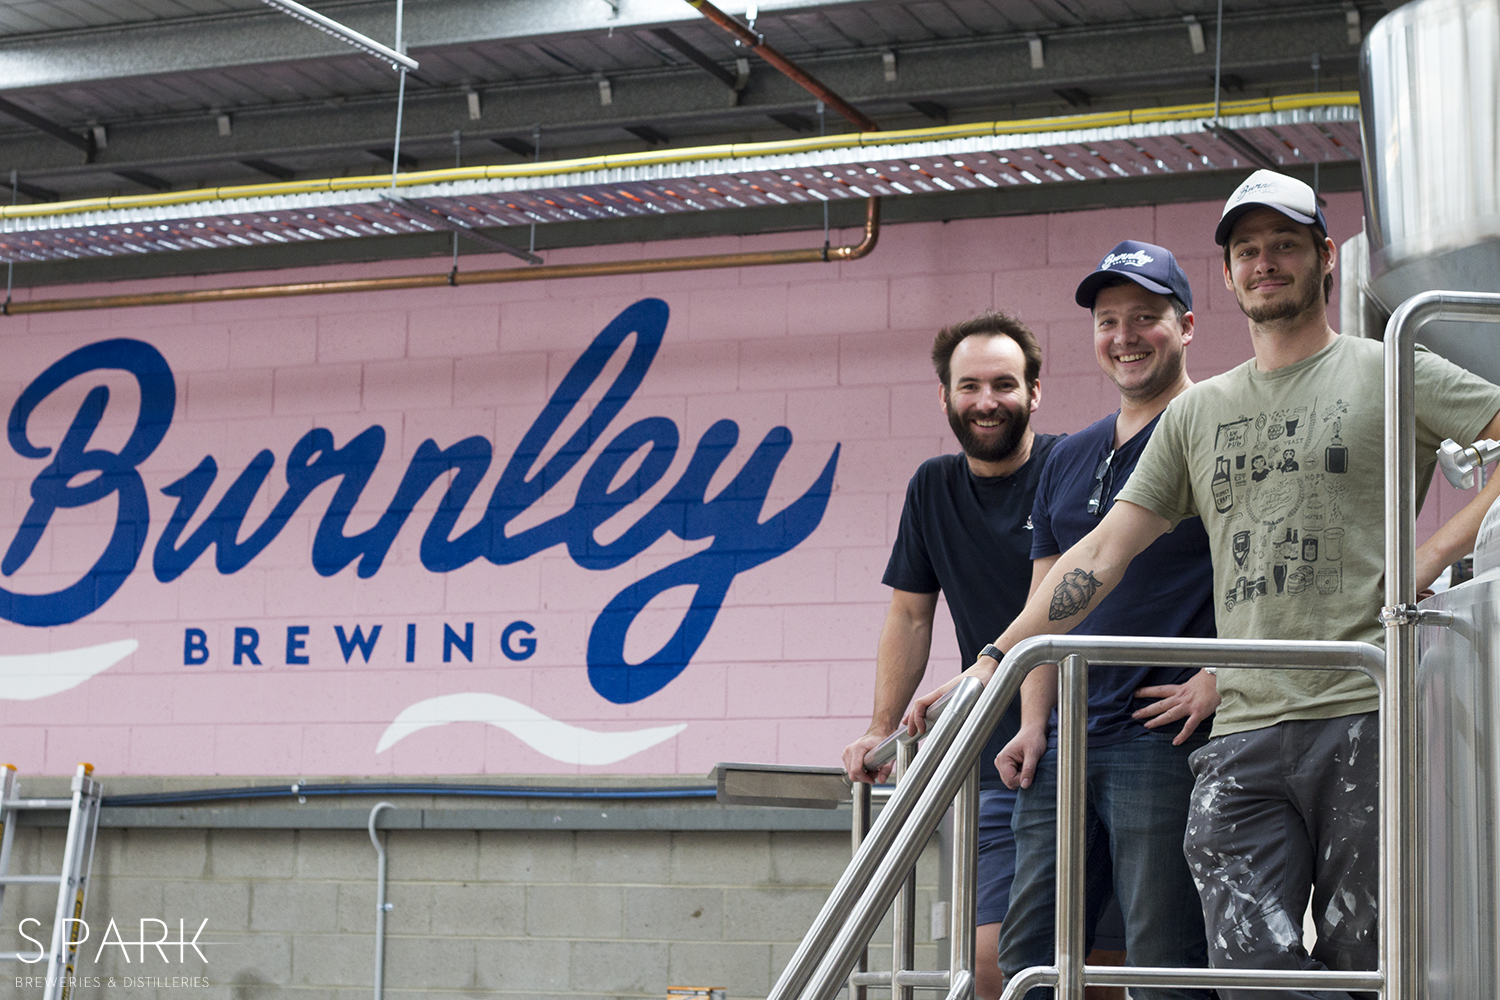 Phil, Neil and Michael from Burnley Brewing on the brewdeck of the 15hL system. Neil is wearing a matching Burnley cap